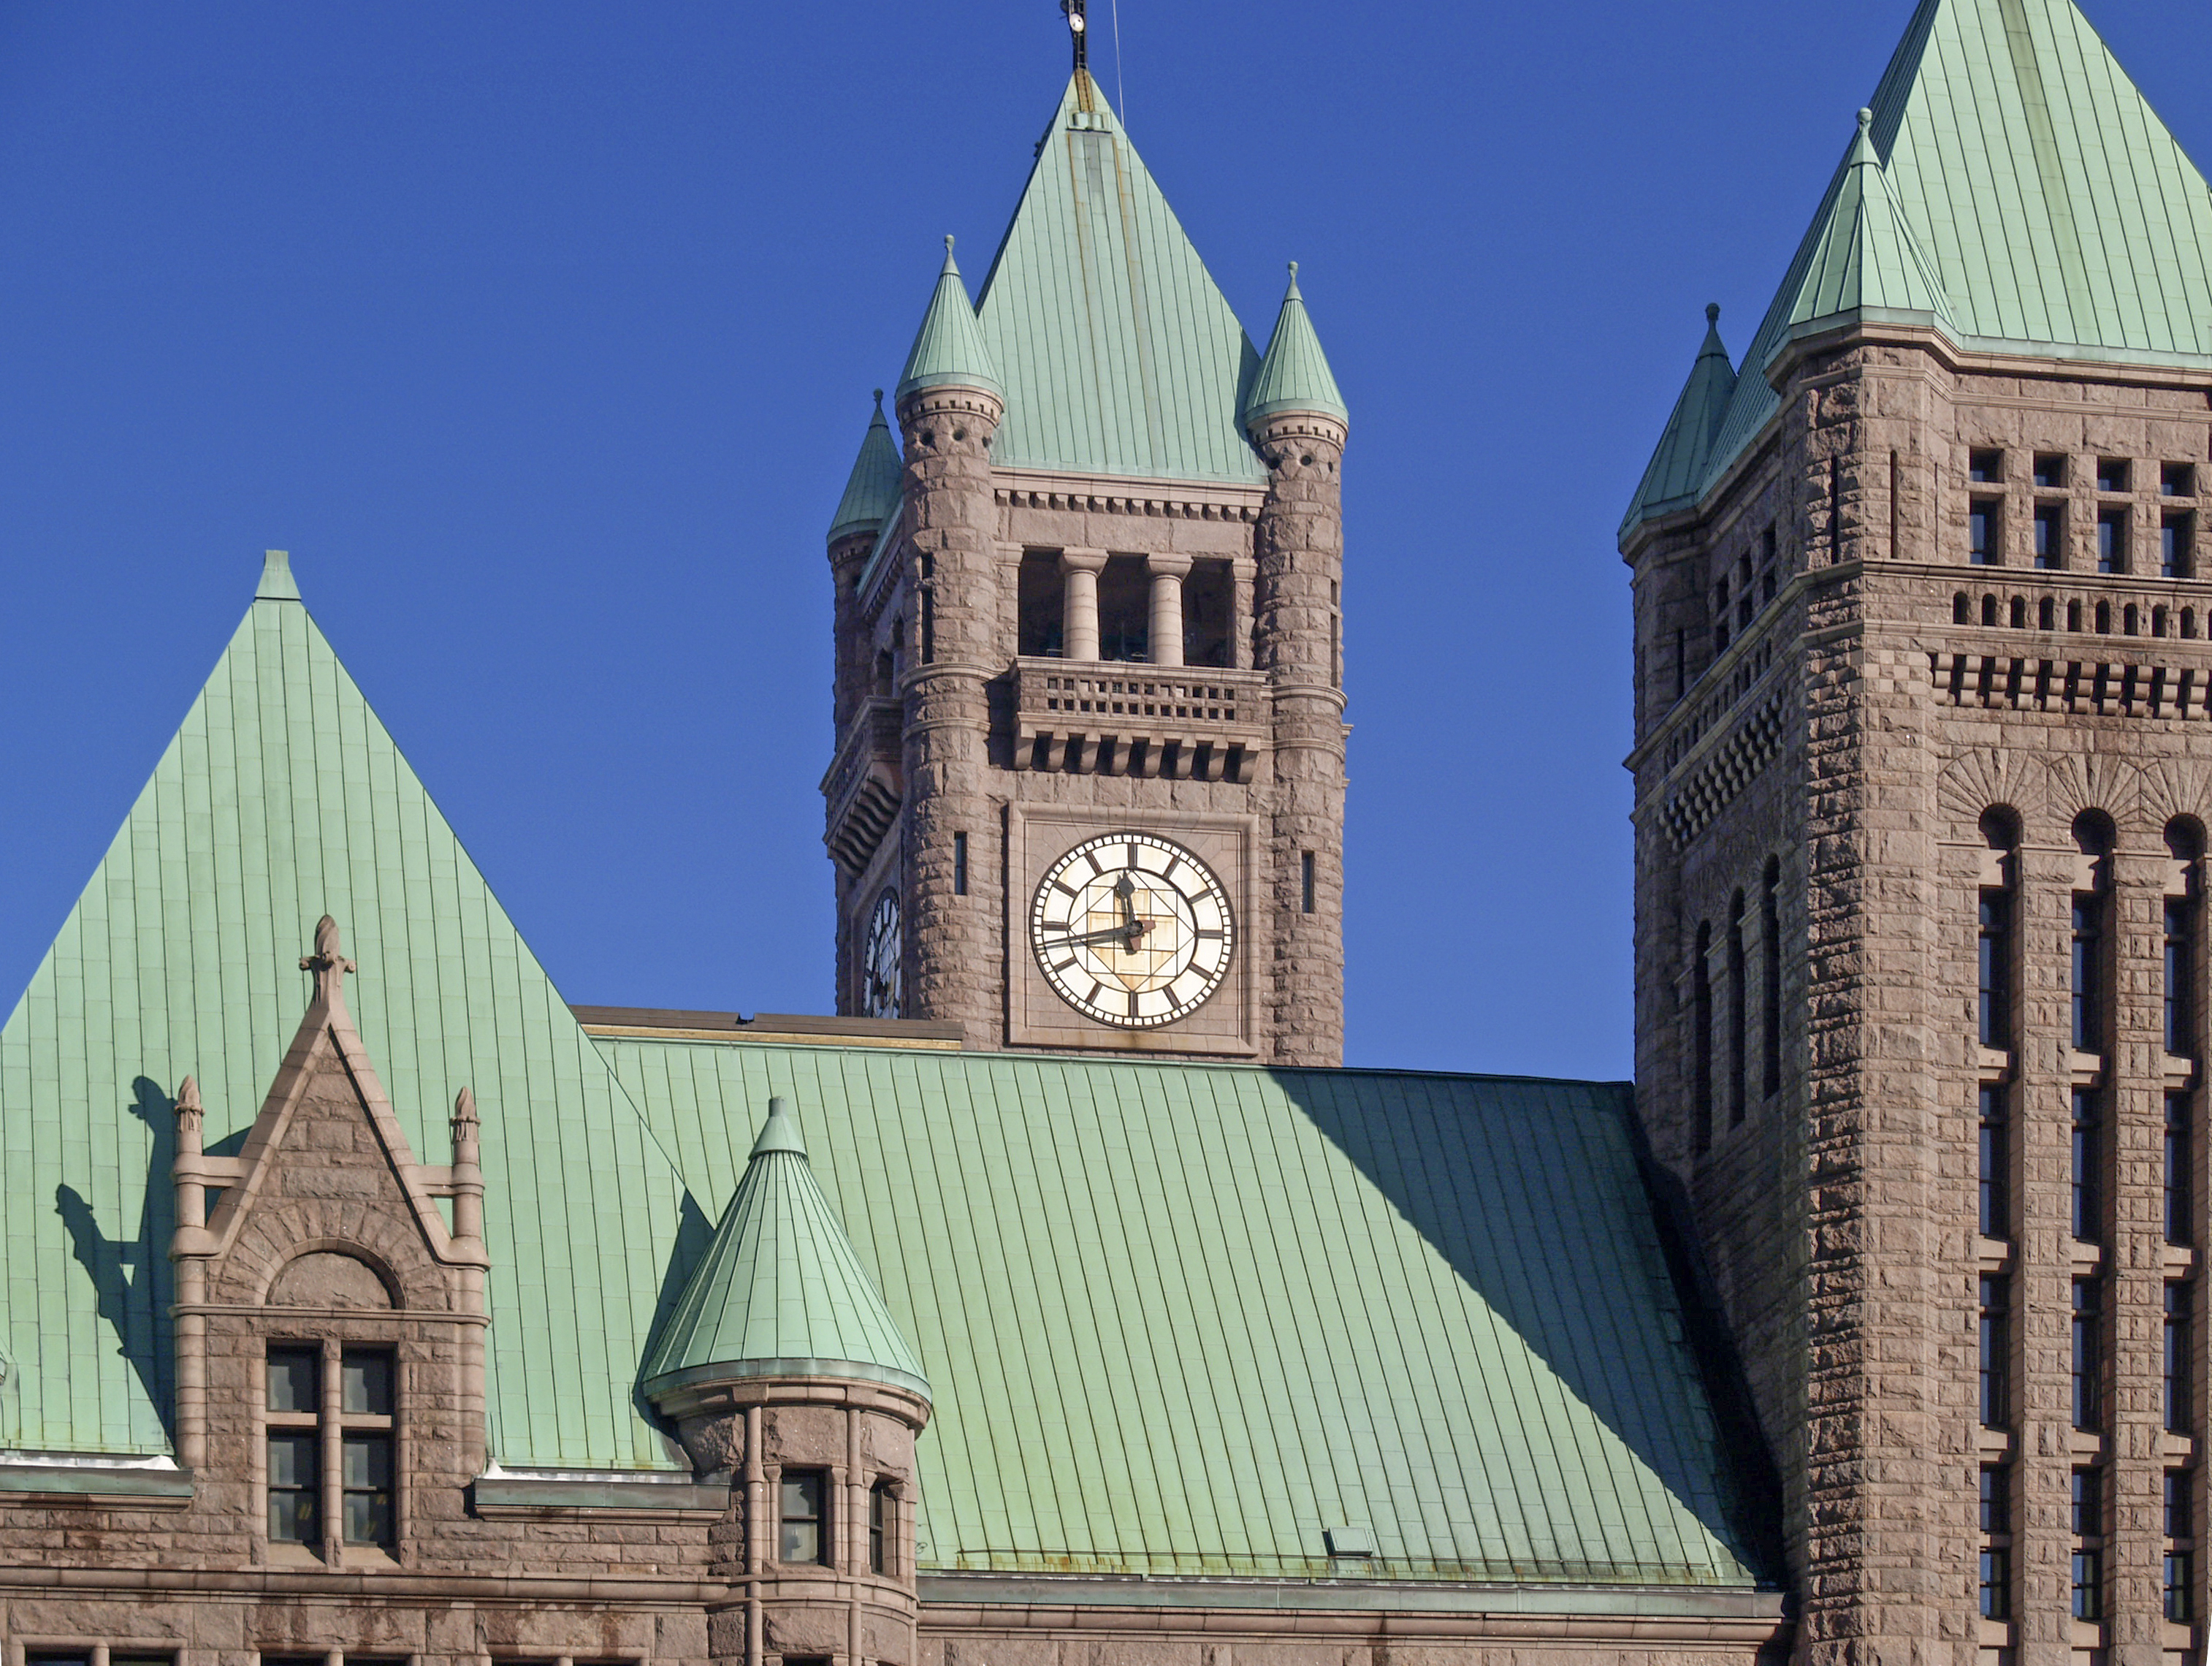 Four of city hall's turrets seen near the roof